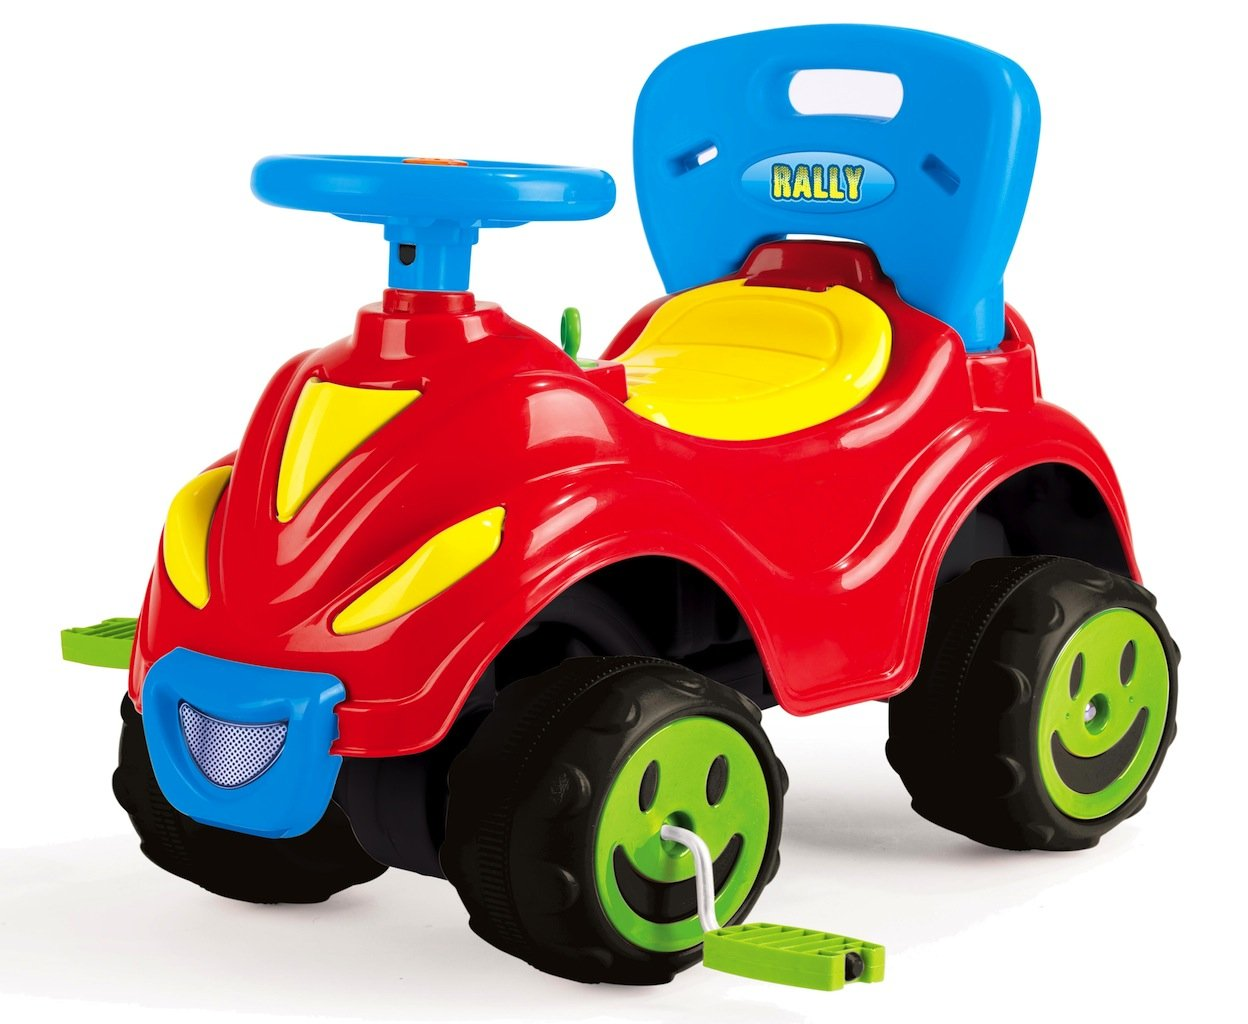 smile-car-2-in-1-pedal-operated-assembled-in-polybag-0800281